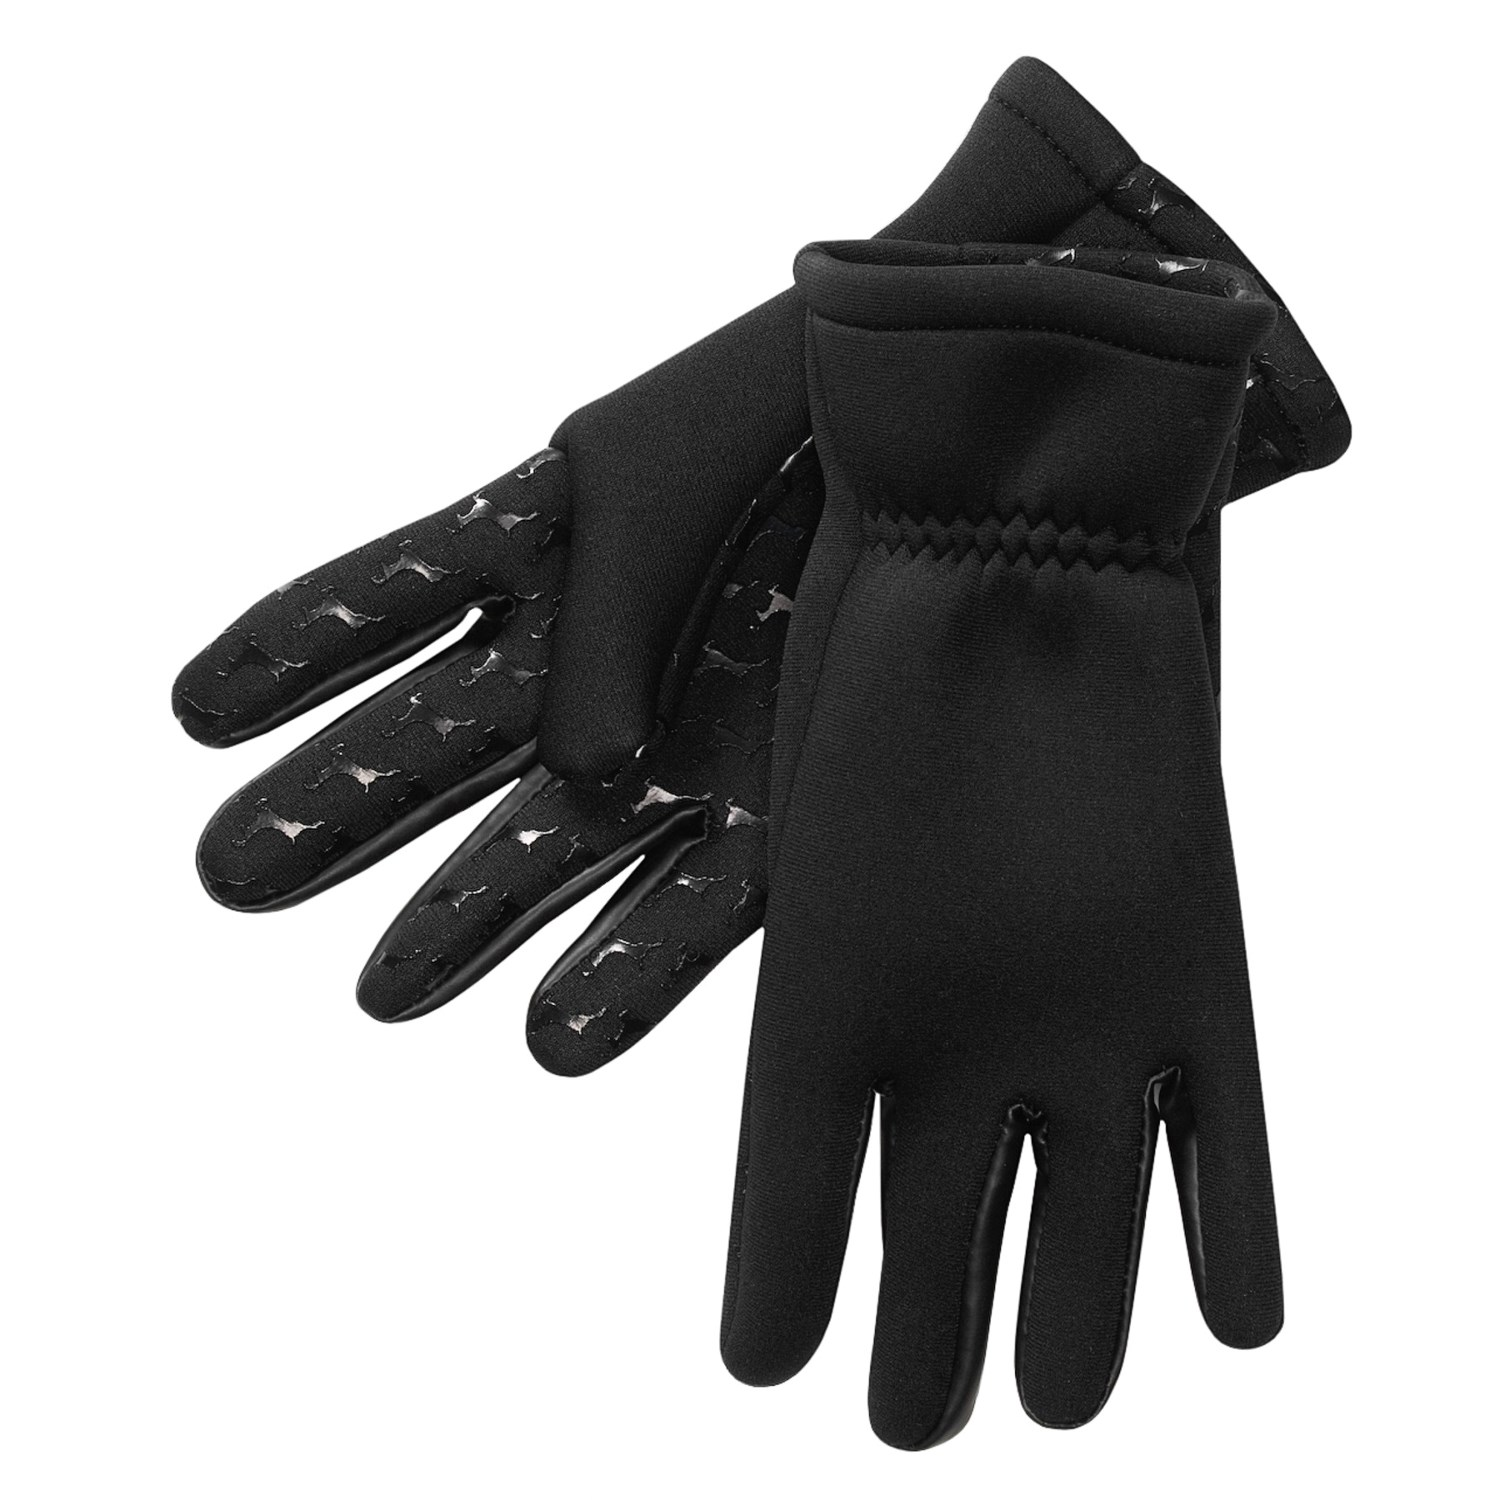 Hot shot neoprene fishing gloves w hot shot logo grip for for Neoprene fishing gloves